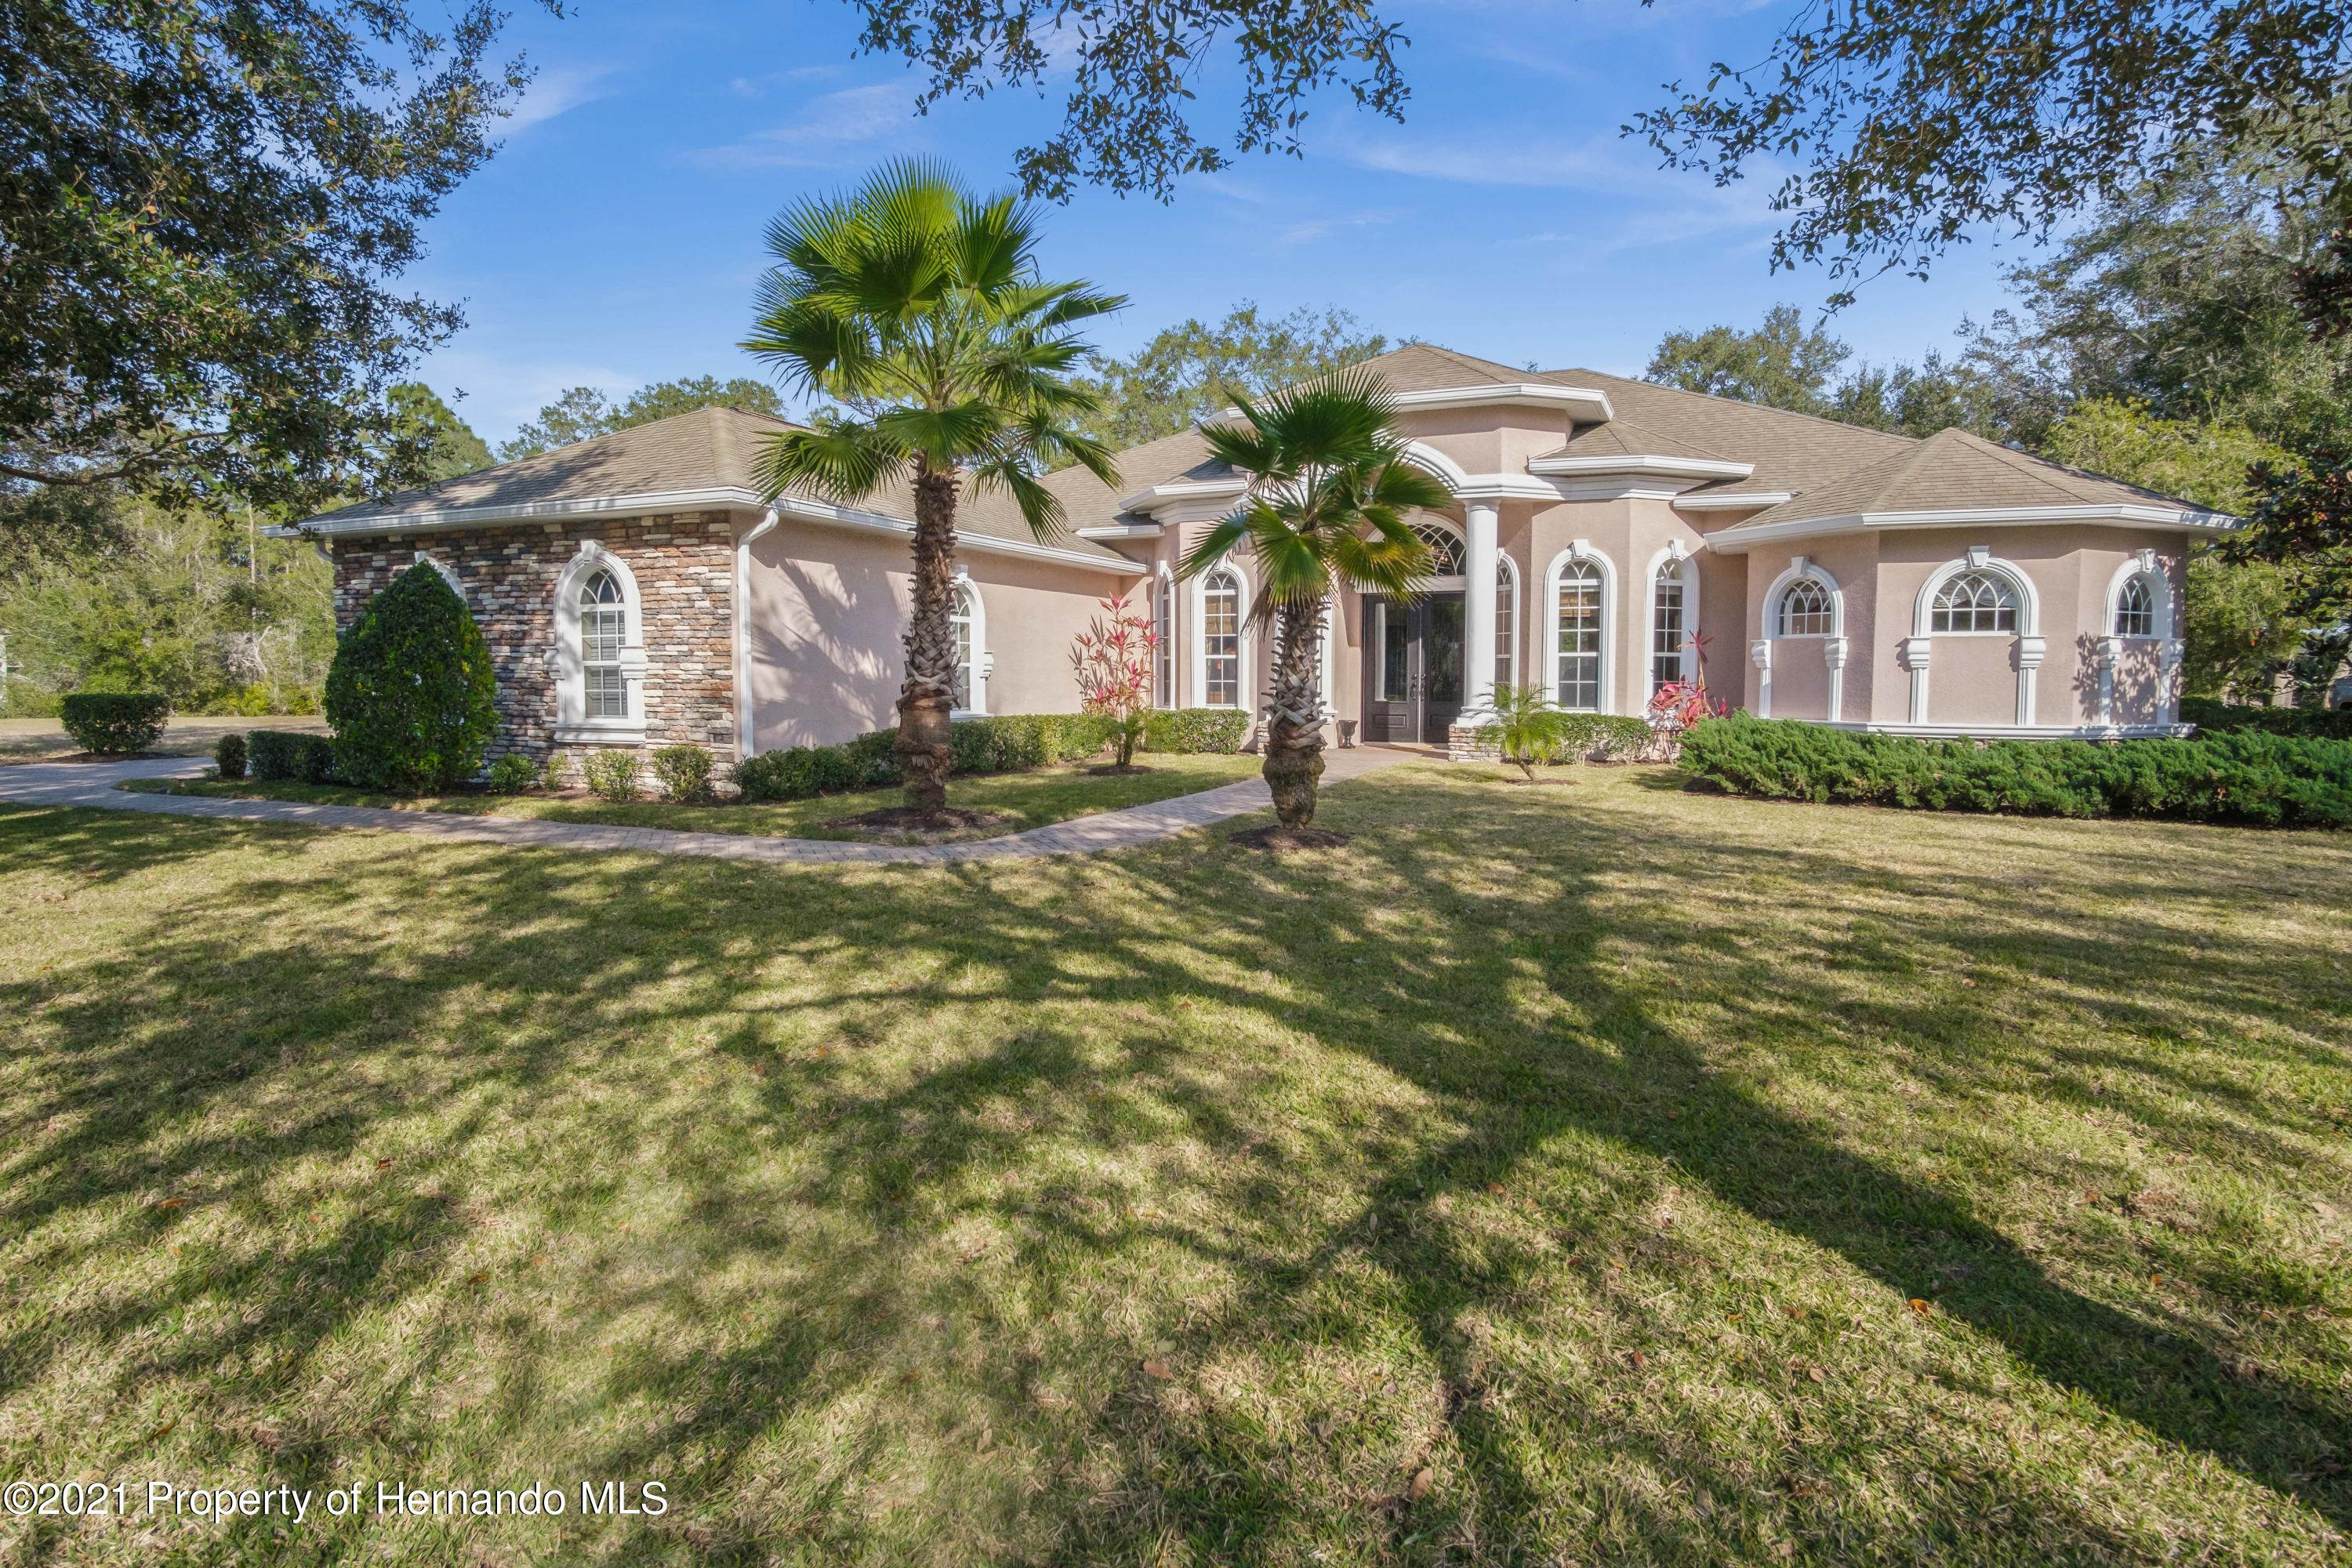 Details for 12714 Seronera Valley Court, Spring Hill, FL 34610